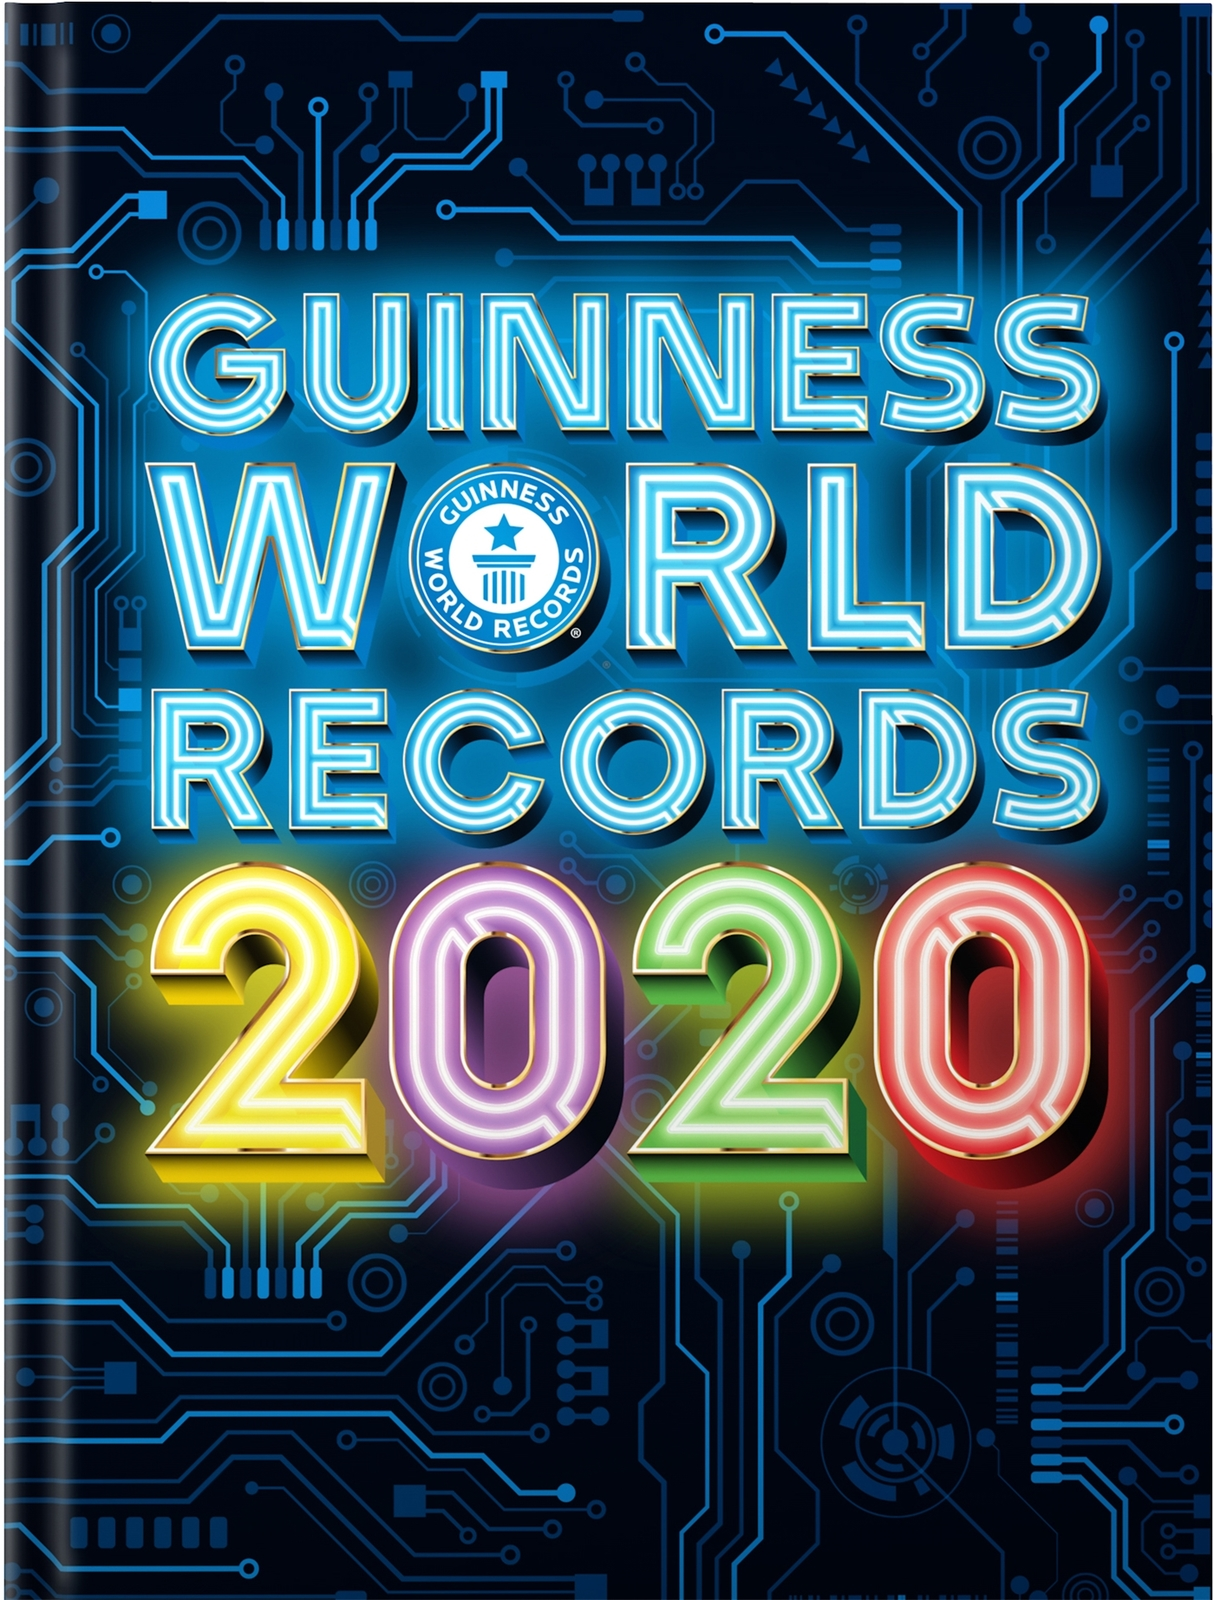 Guinness World Records 2020 image